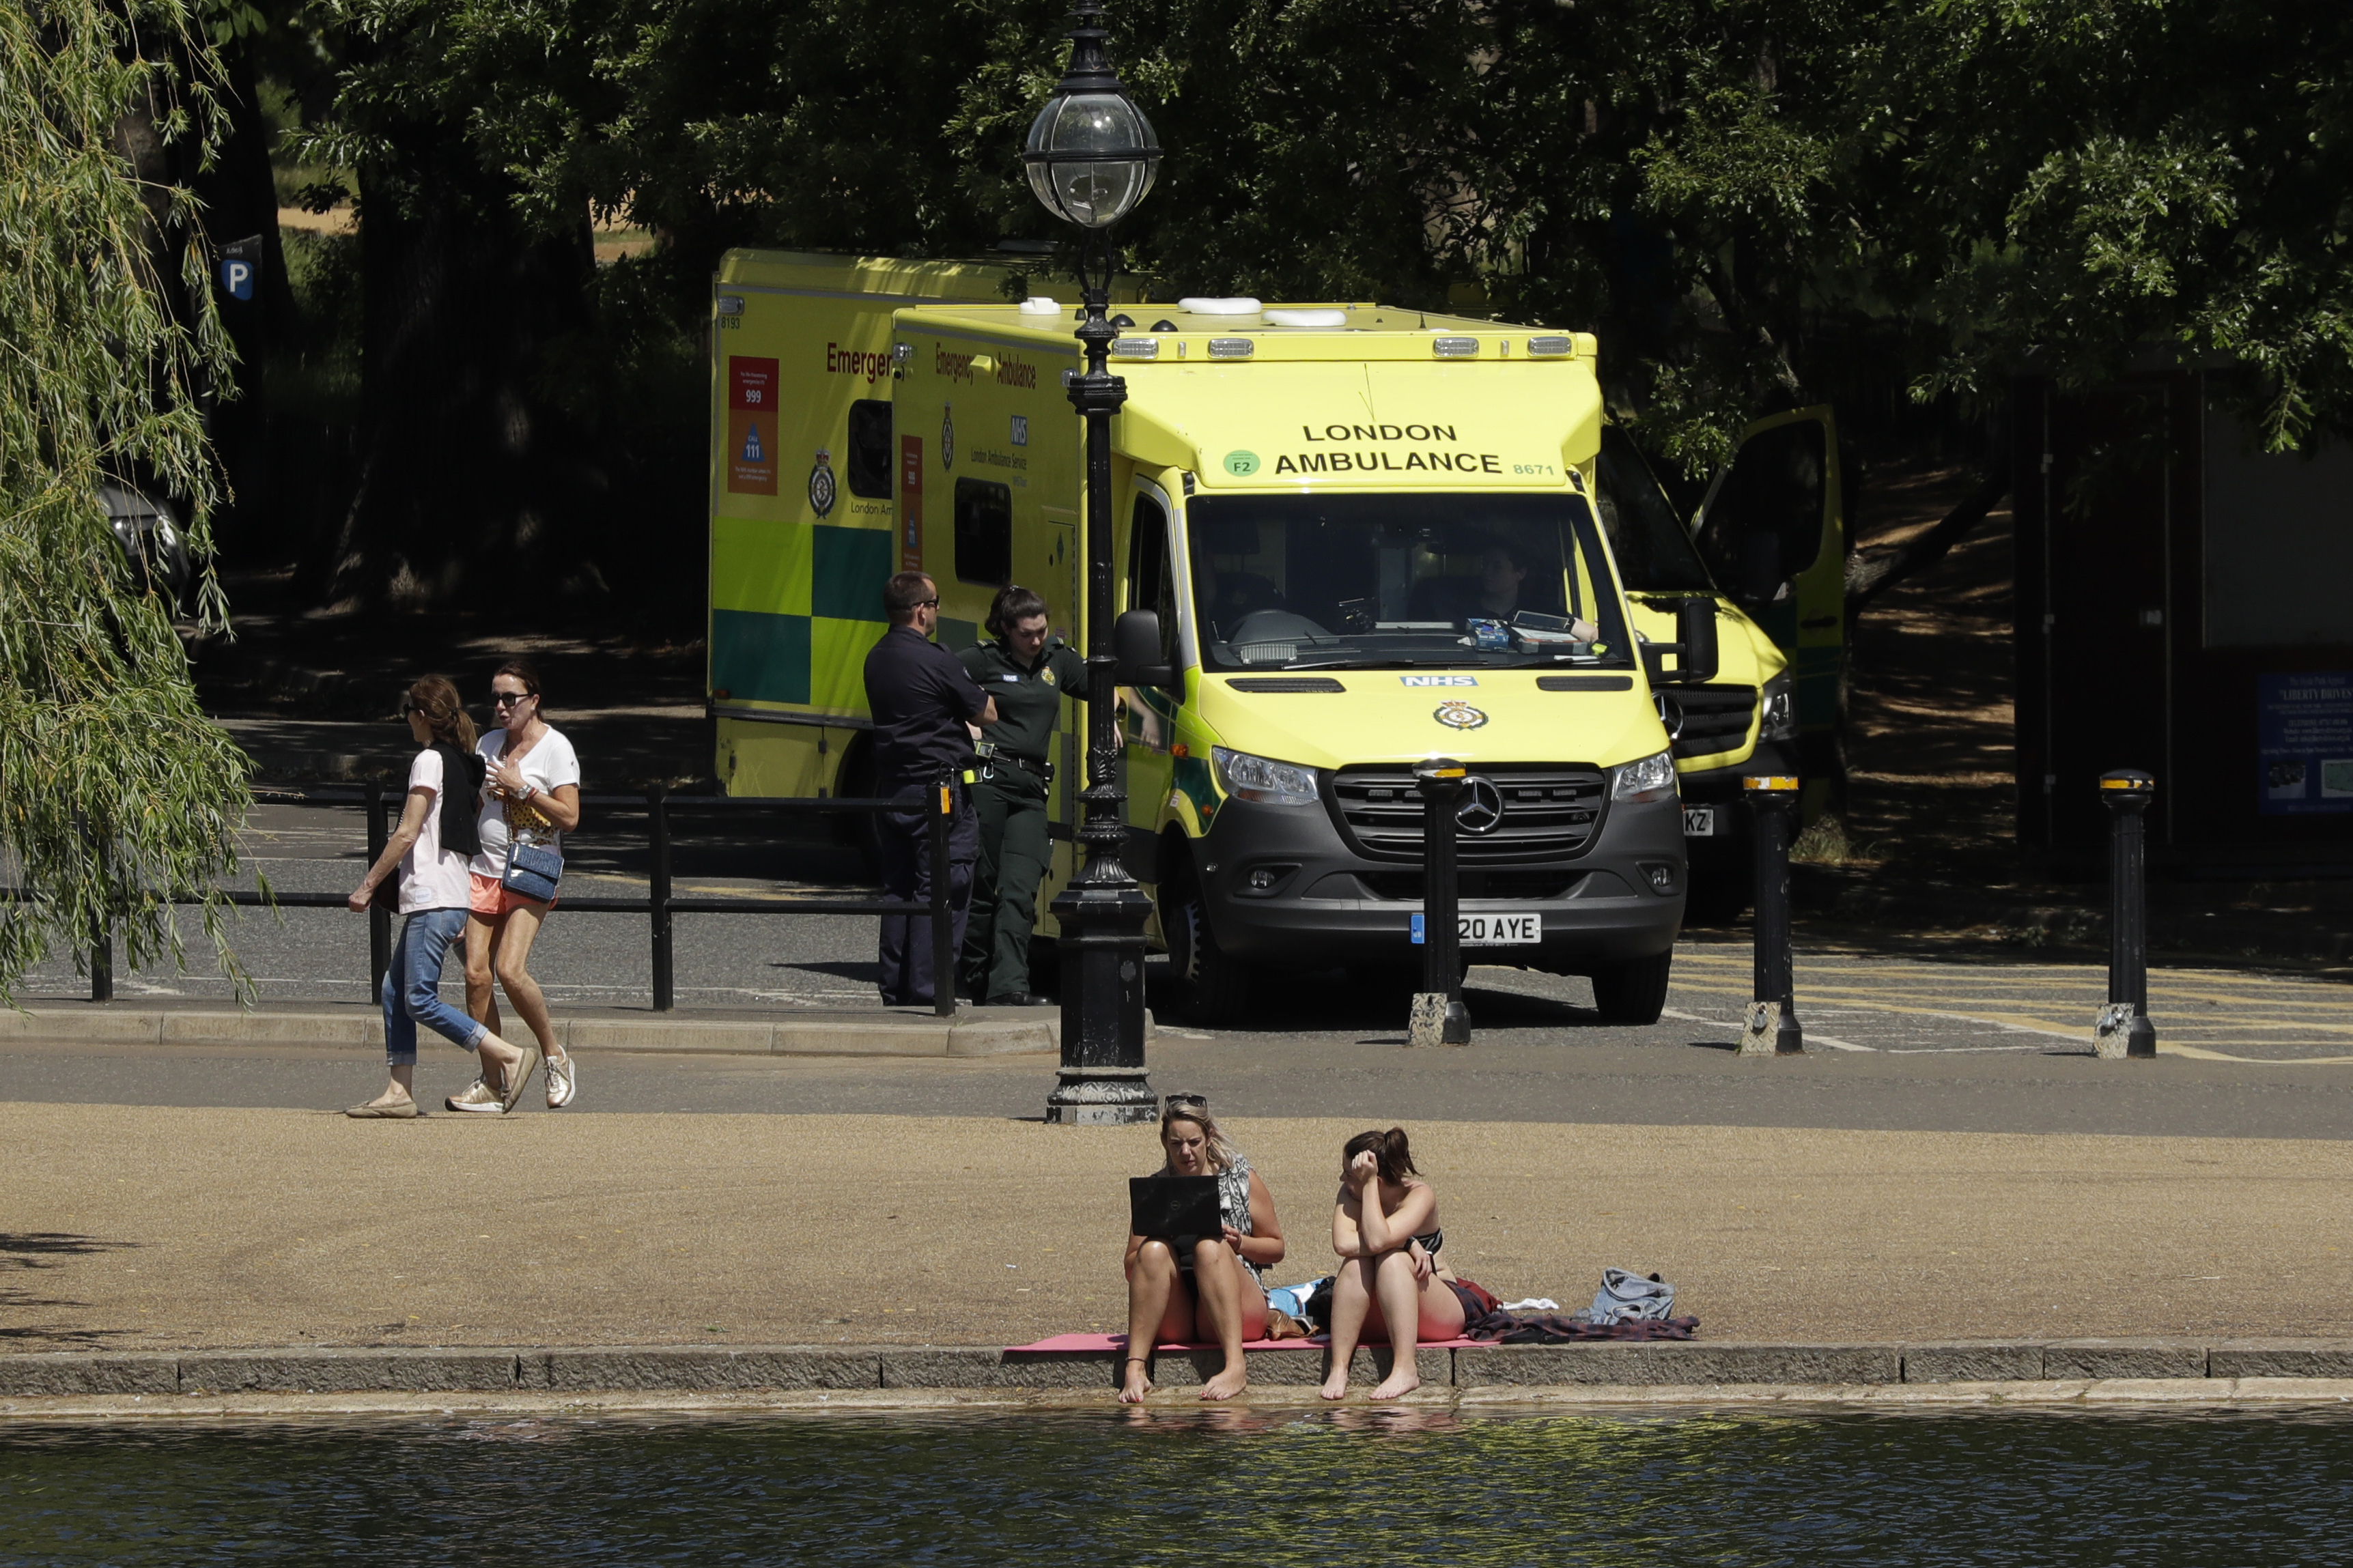 Two ambulances stand parked in a car park as people relax during warm weather by the Serpentine lake, in Hyde Park, London, Wednesday, May 20, 2020. Lockdown restrictions due to the coronavirus outbreak have been relaxed allowing unlimited outdoor exercise and activities such as sunbathing. The UK's Met Office said Wednesday, it is the hottest day of the year so far with 27.8 Celsius recorded at Heathrow. (AP Photo/Matt Dunham)